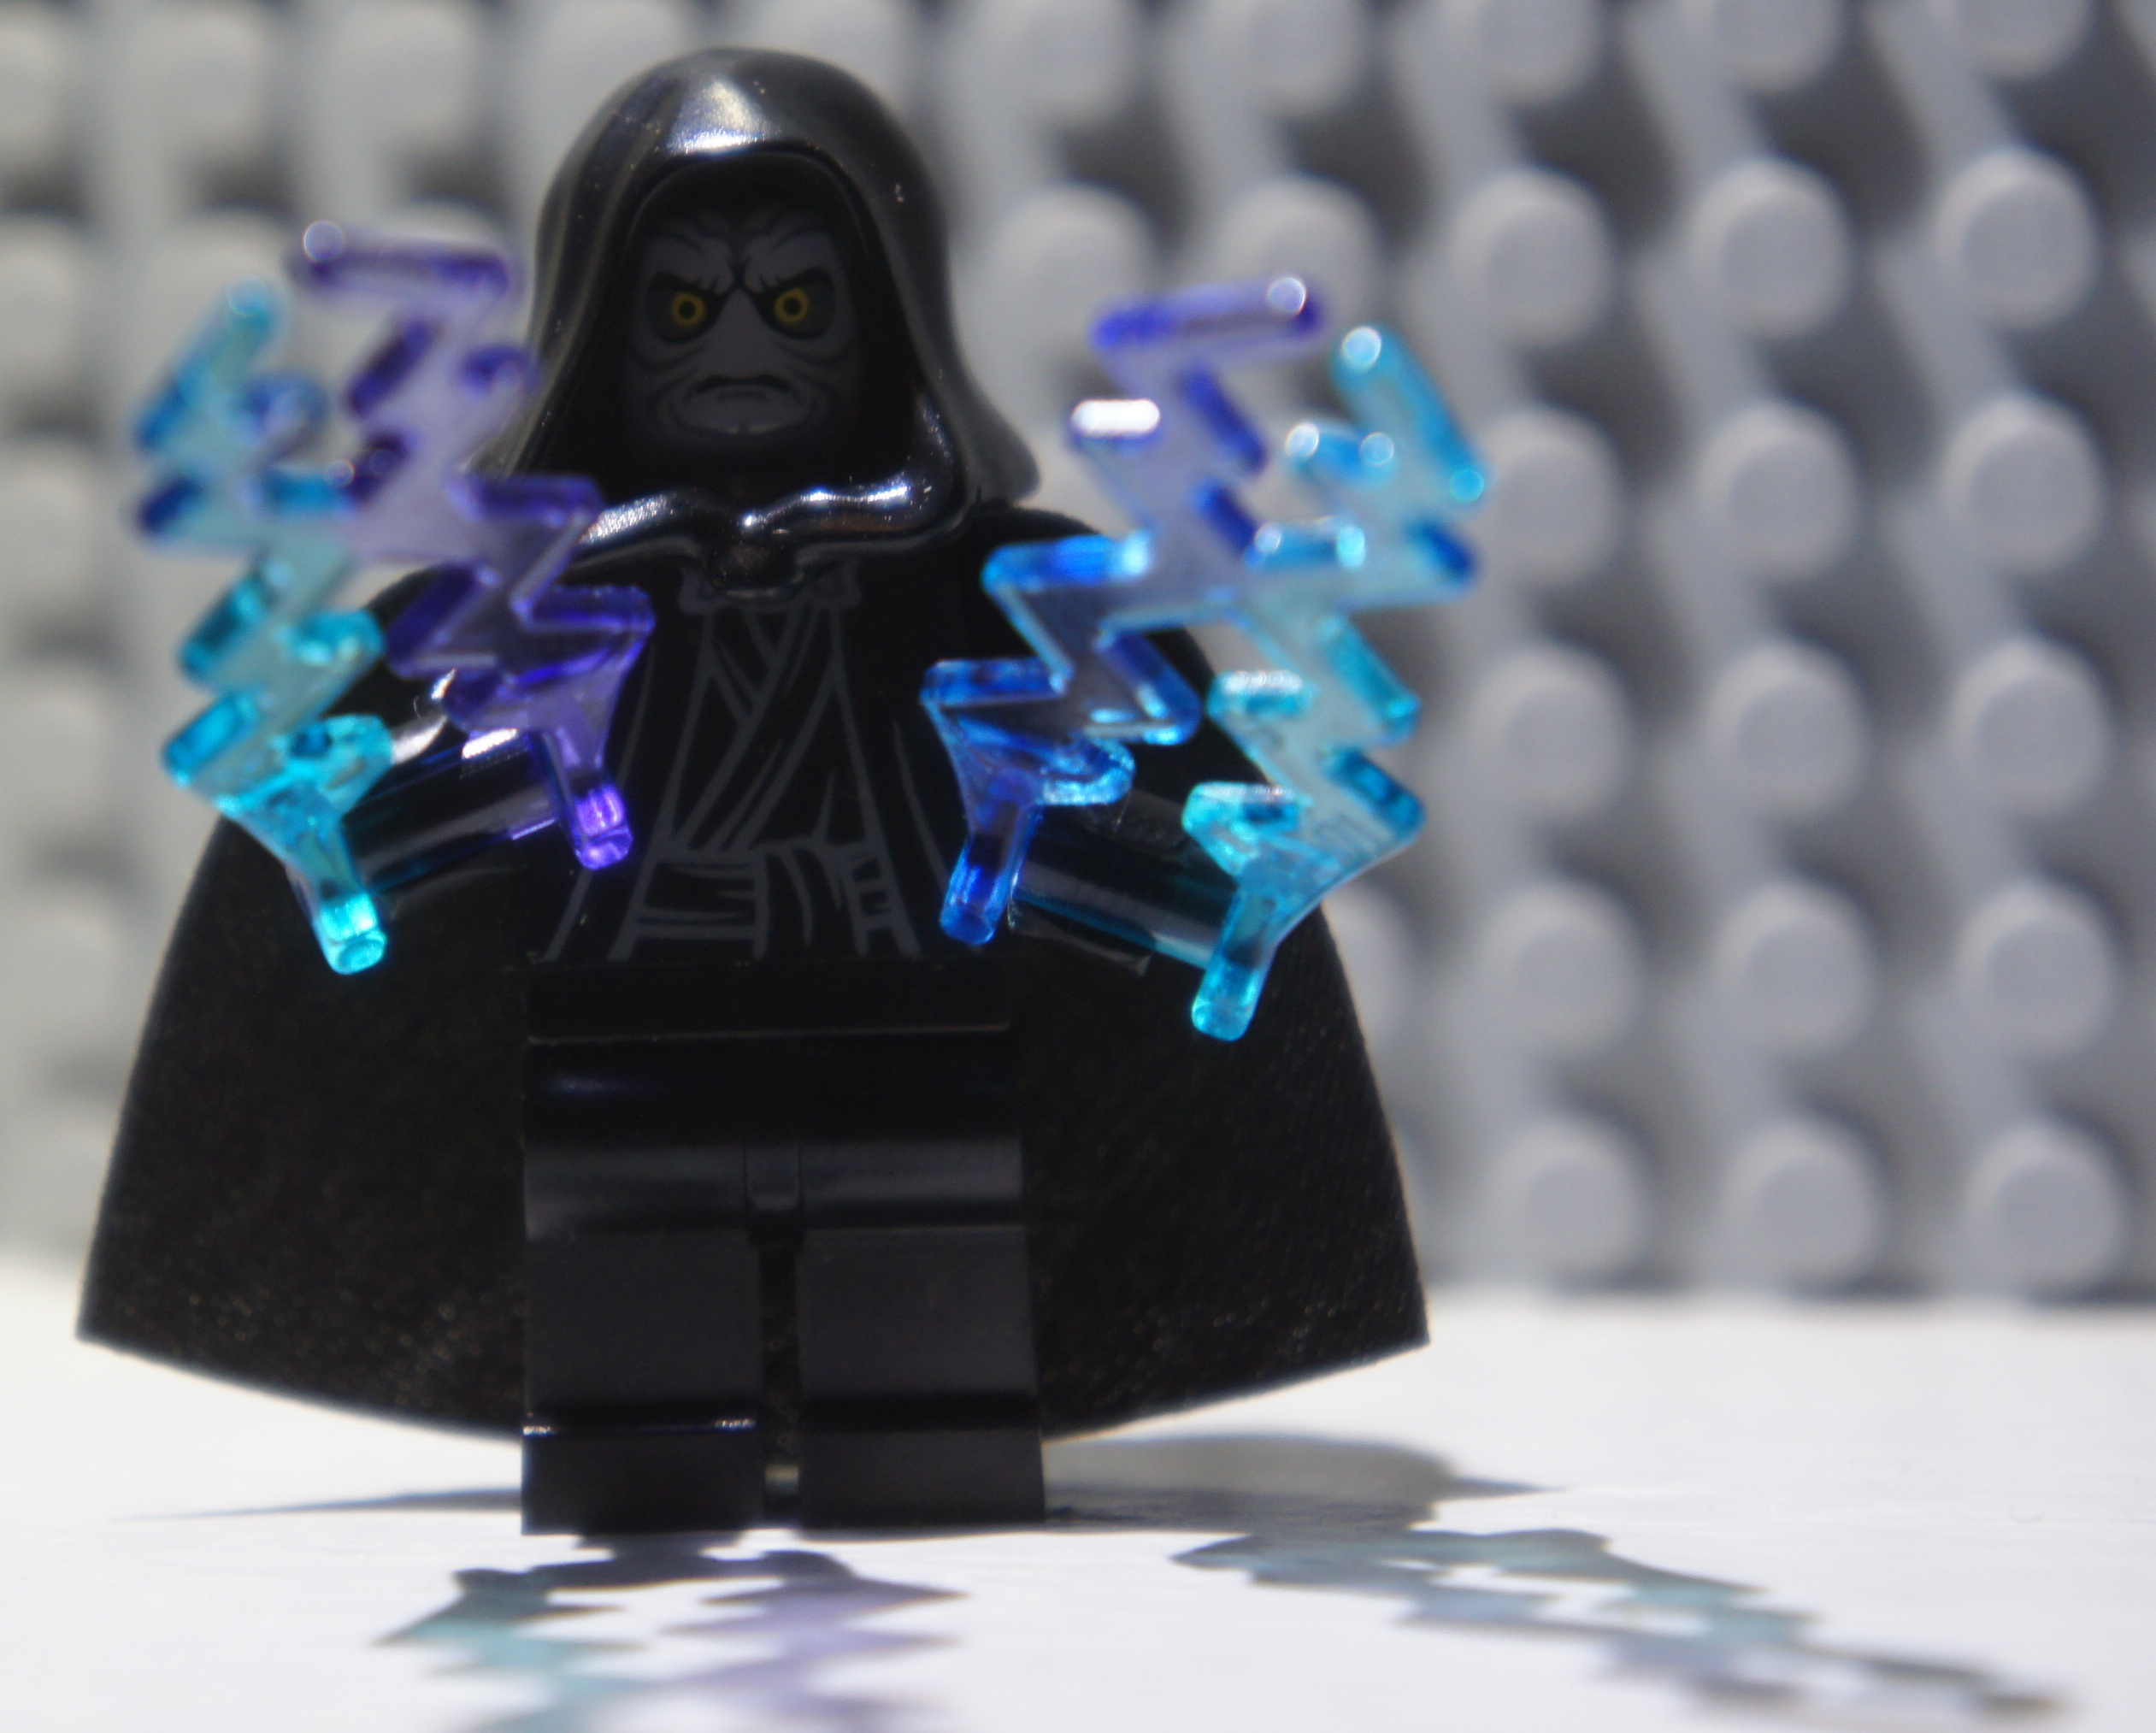 Emperor Palpatine – From the Death Star Set